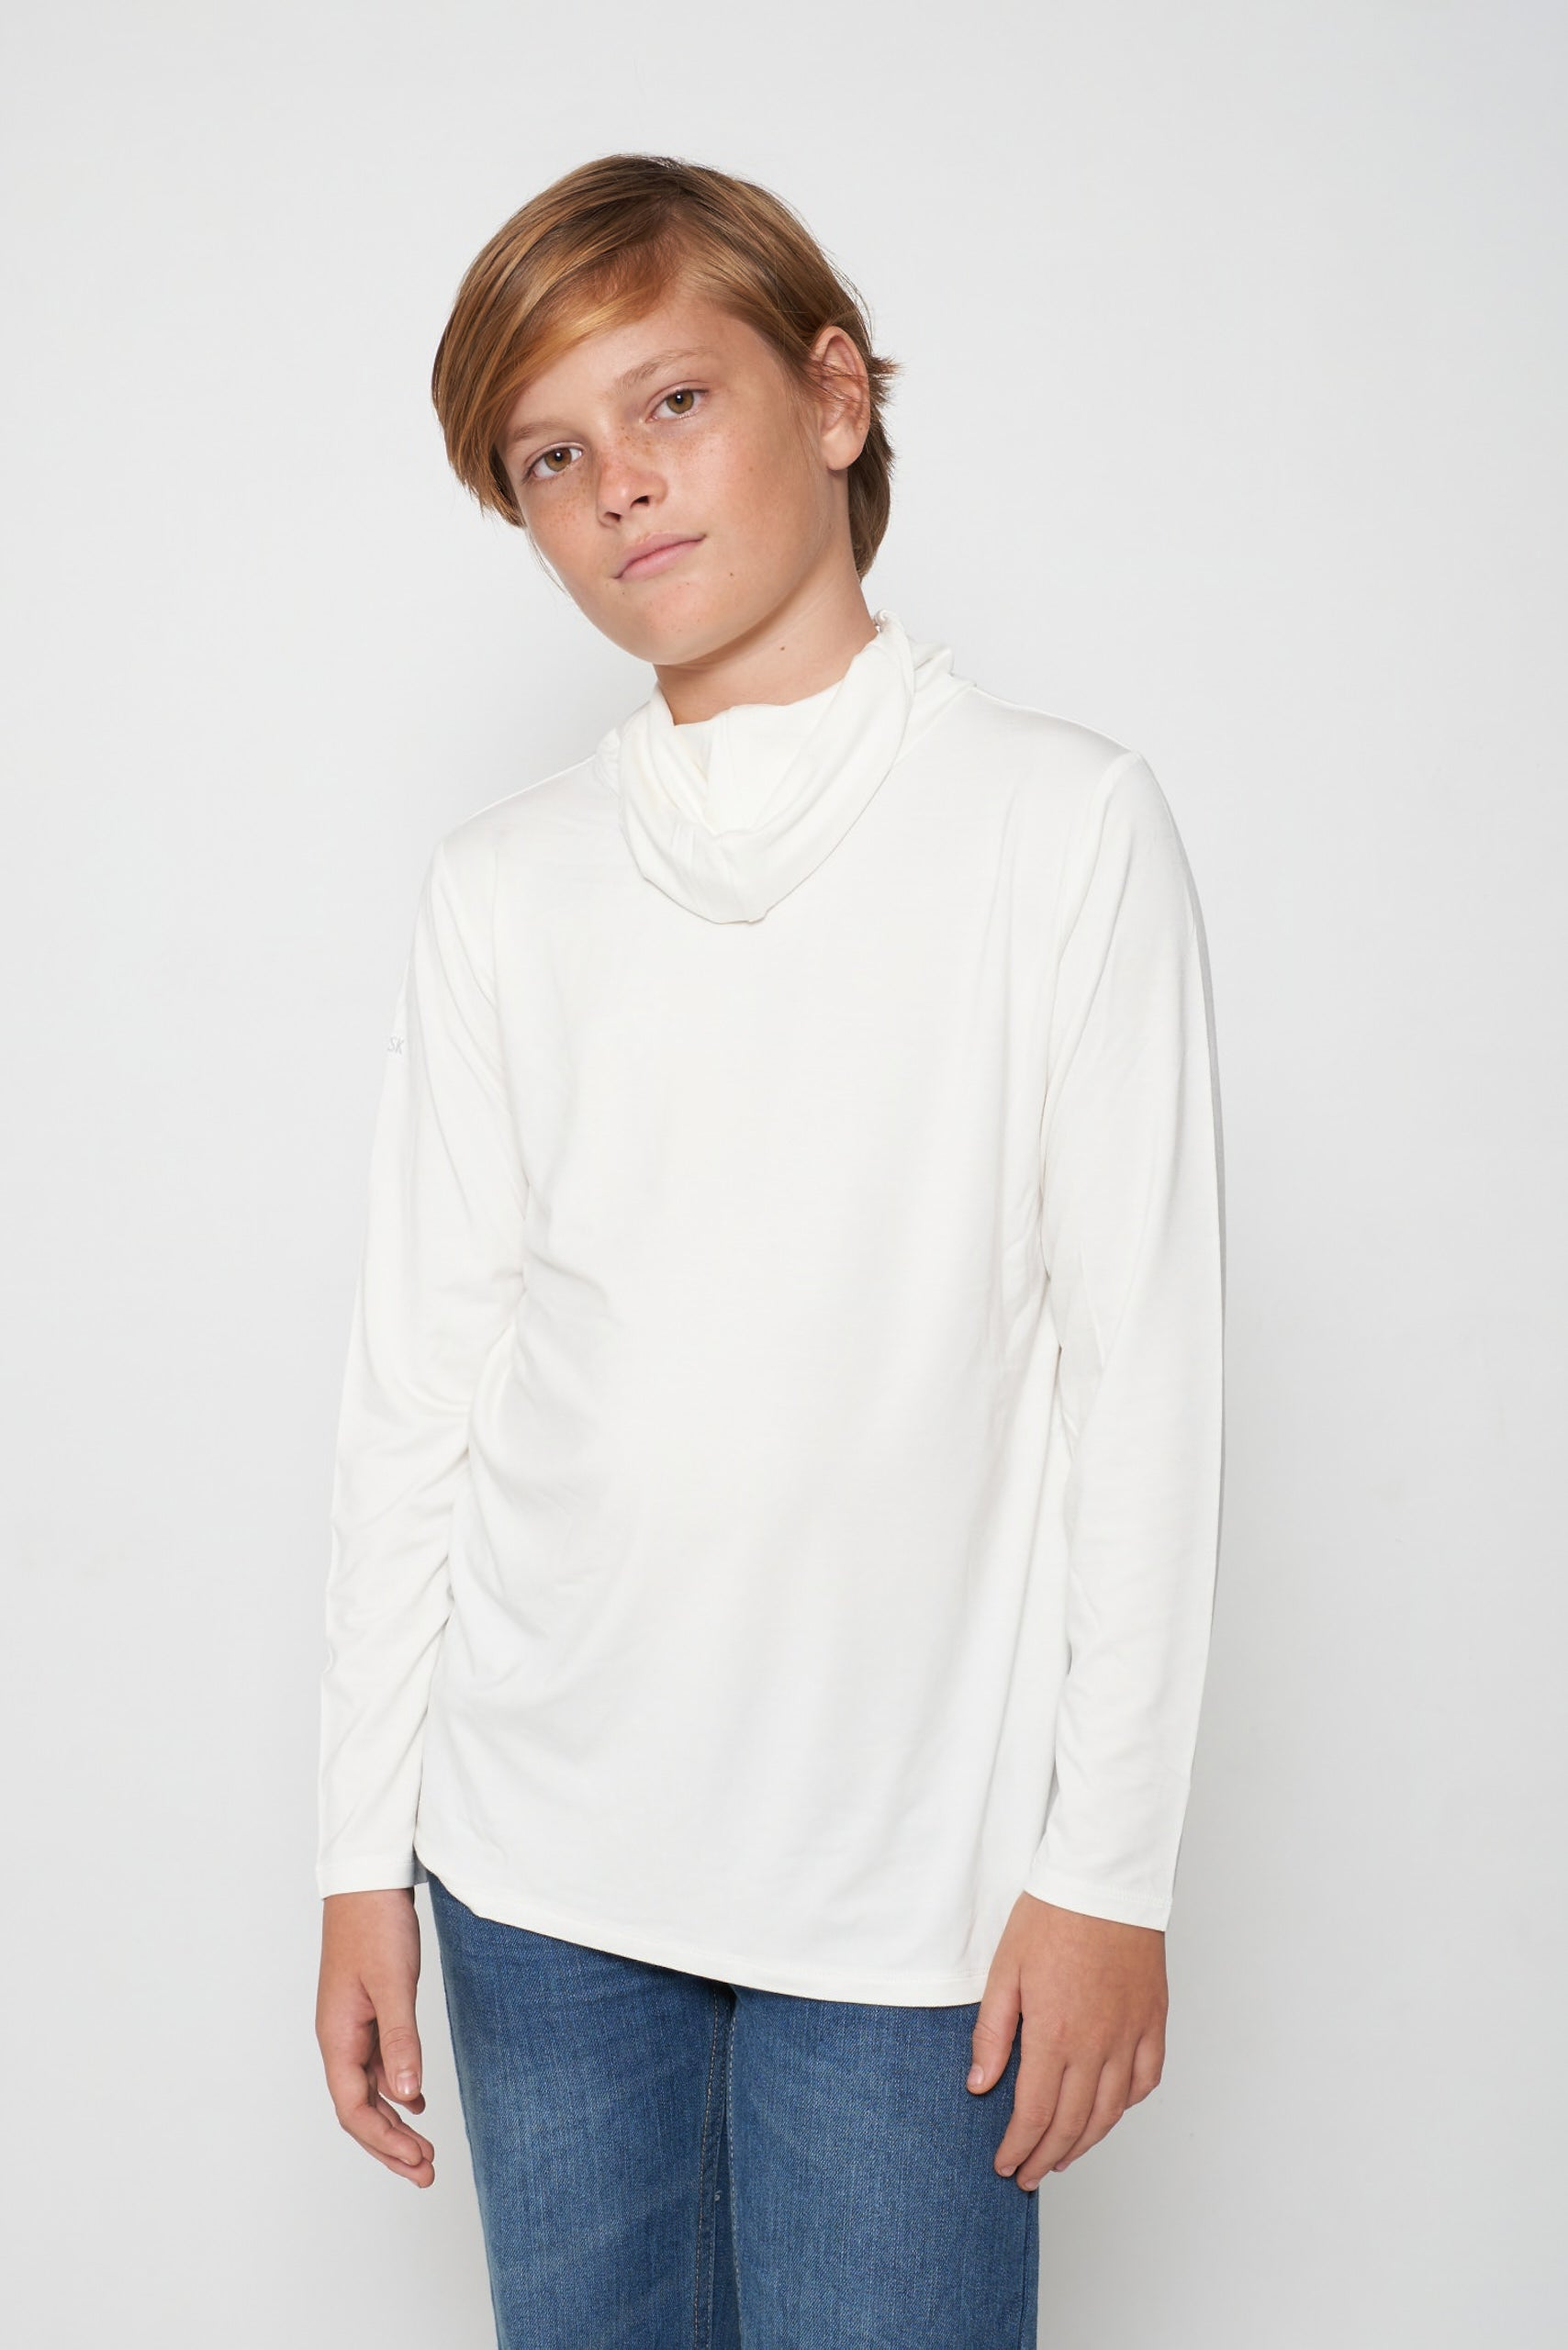 Kids Long Sleeve White Shmask™